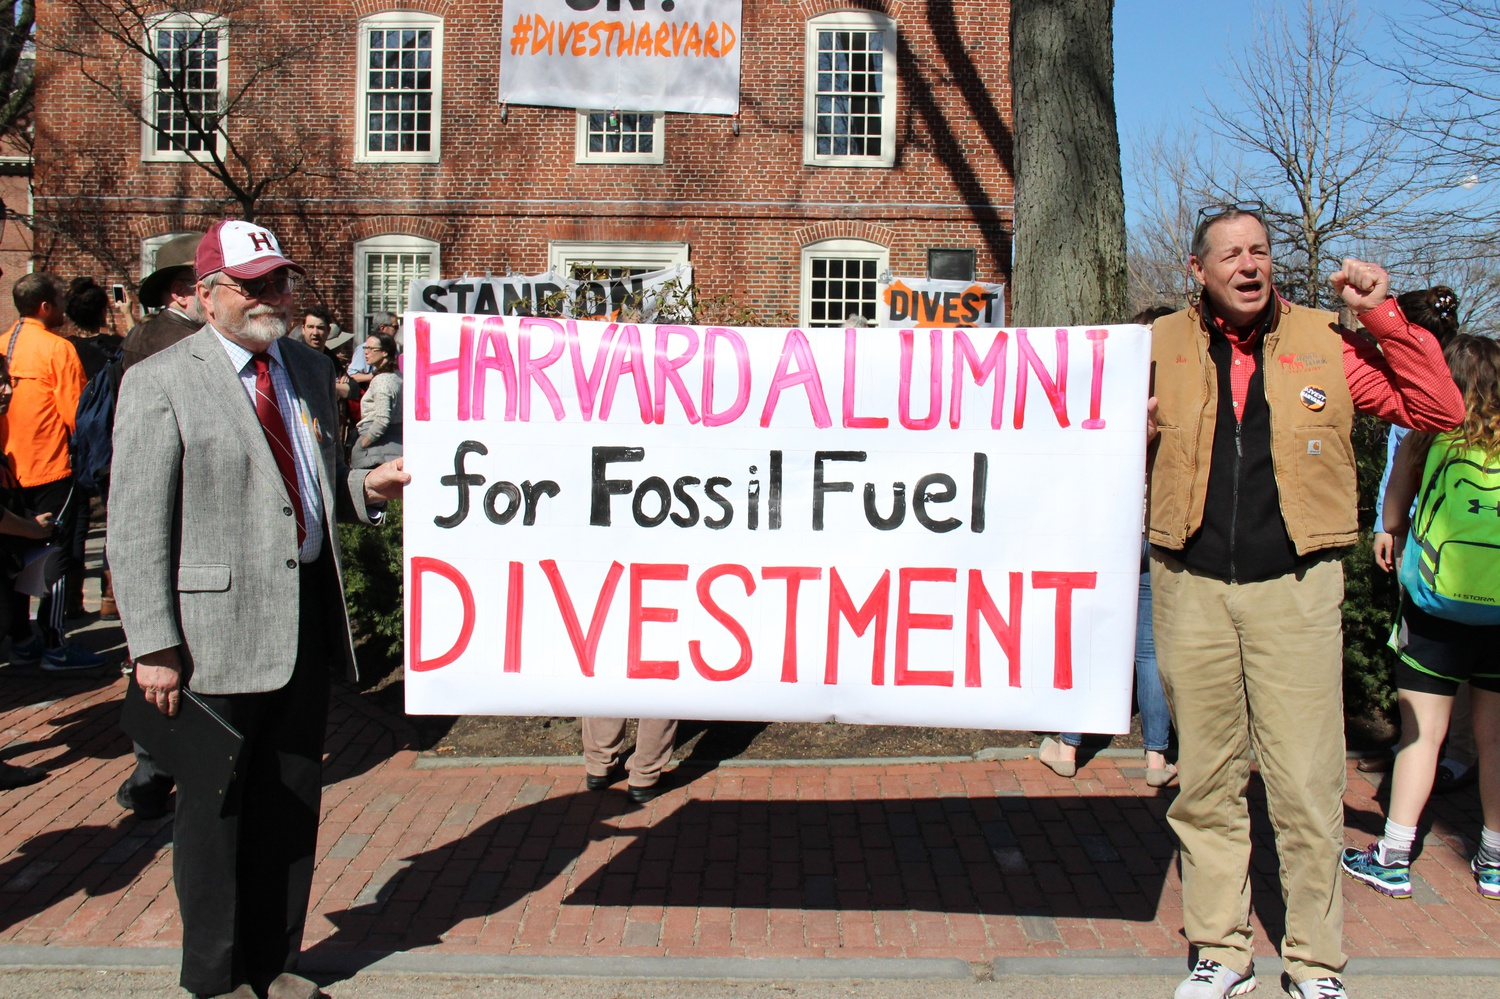 """Donald M. Hooper '68 and C. """"Al"""" Boright '68, President of the Harvard-Radcliffe Club of Vermont, hold a banner calling for University divestment from fossil fuels. Hooper and Boright took part in a rally held Monday morning as part of """"Harvard Heat Week."""""""